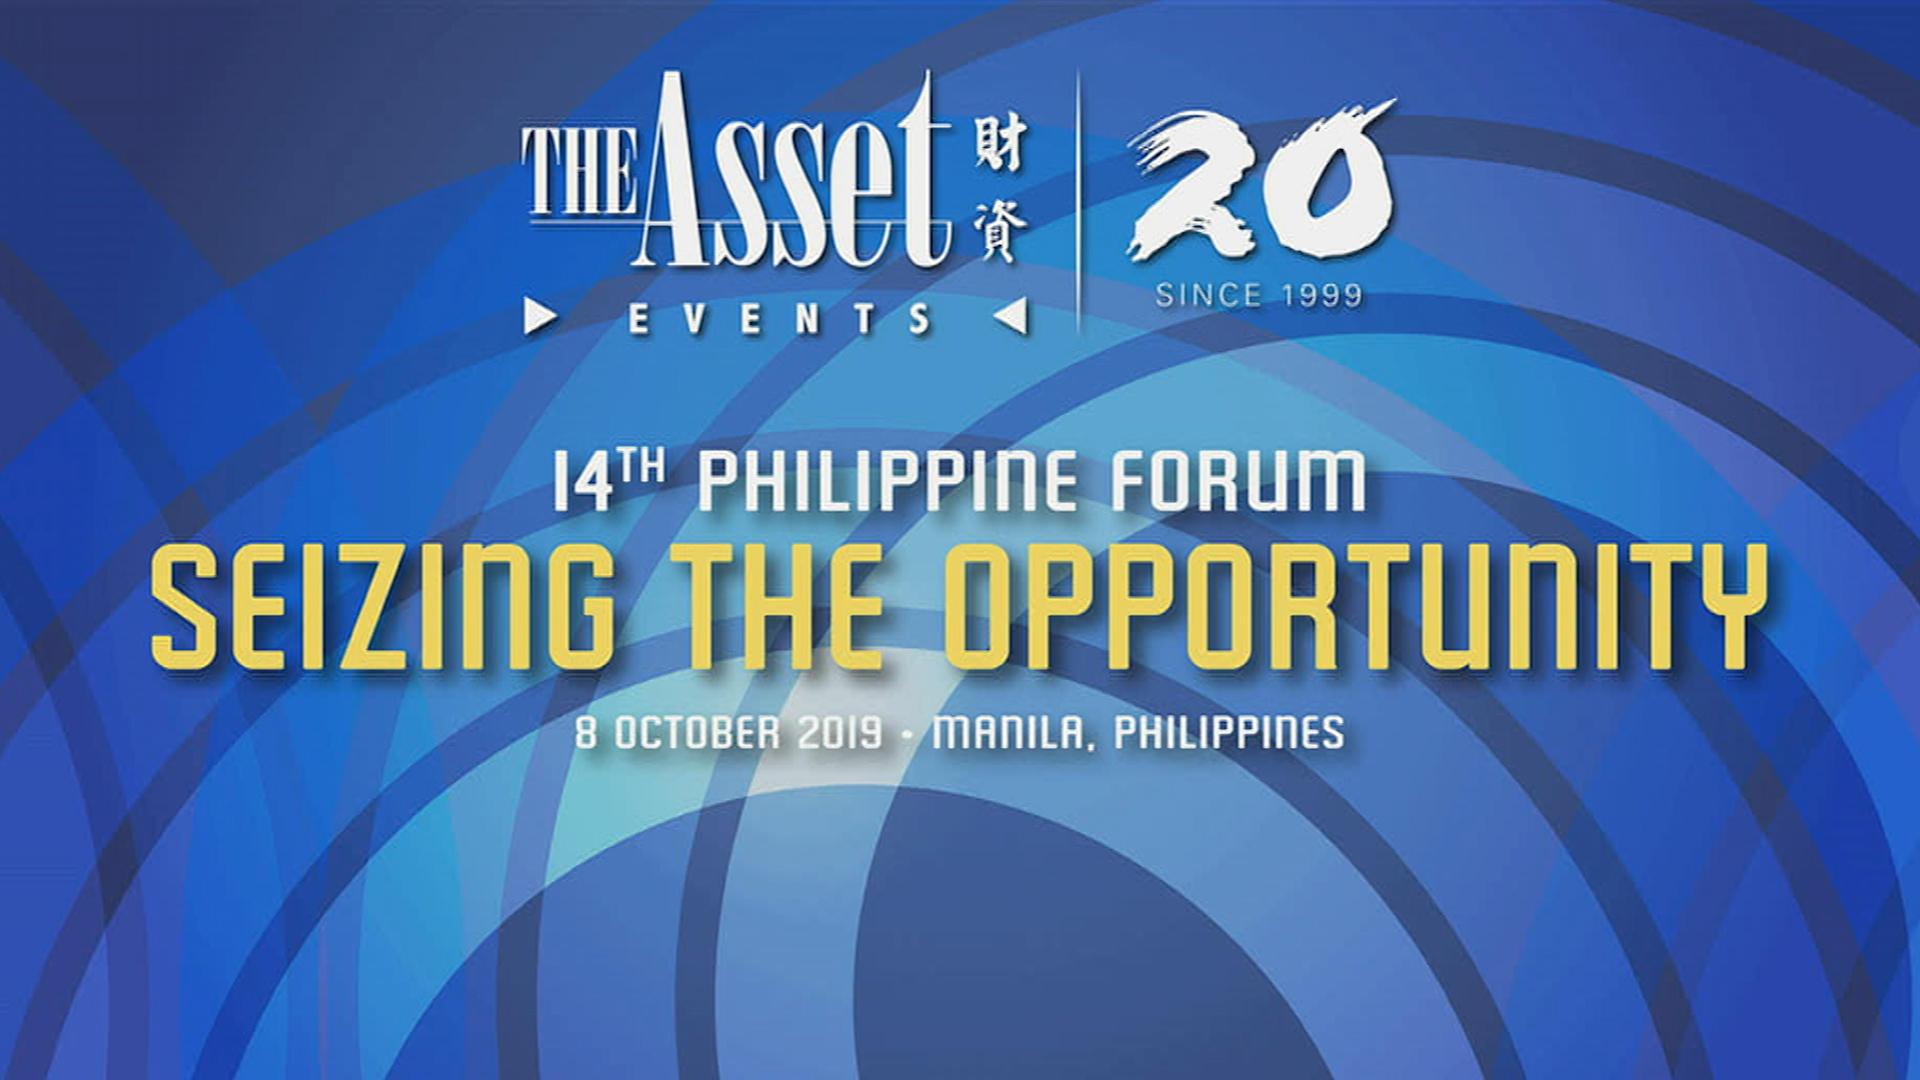 14th Philippine Forum: Highlights